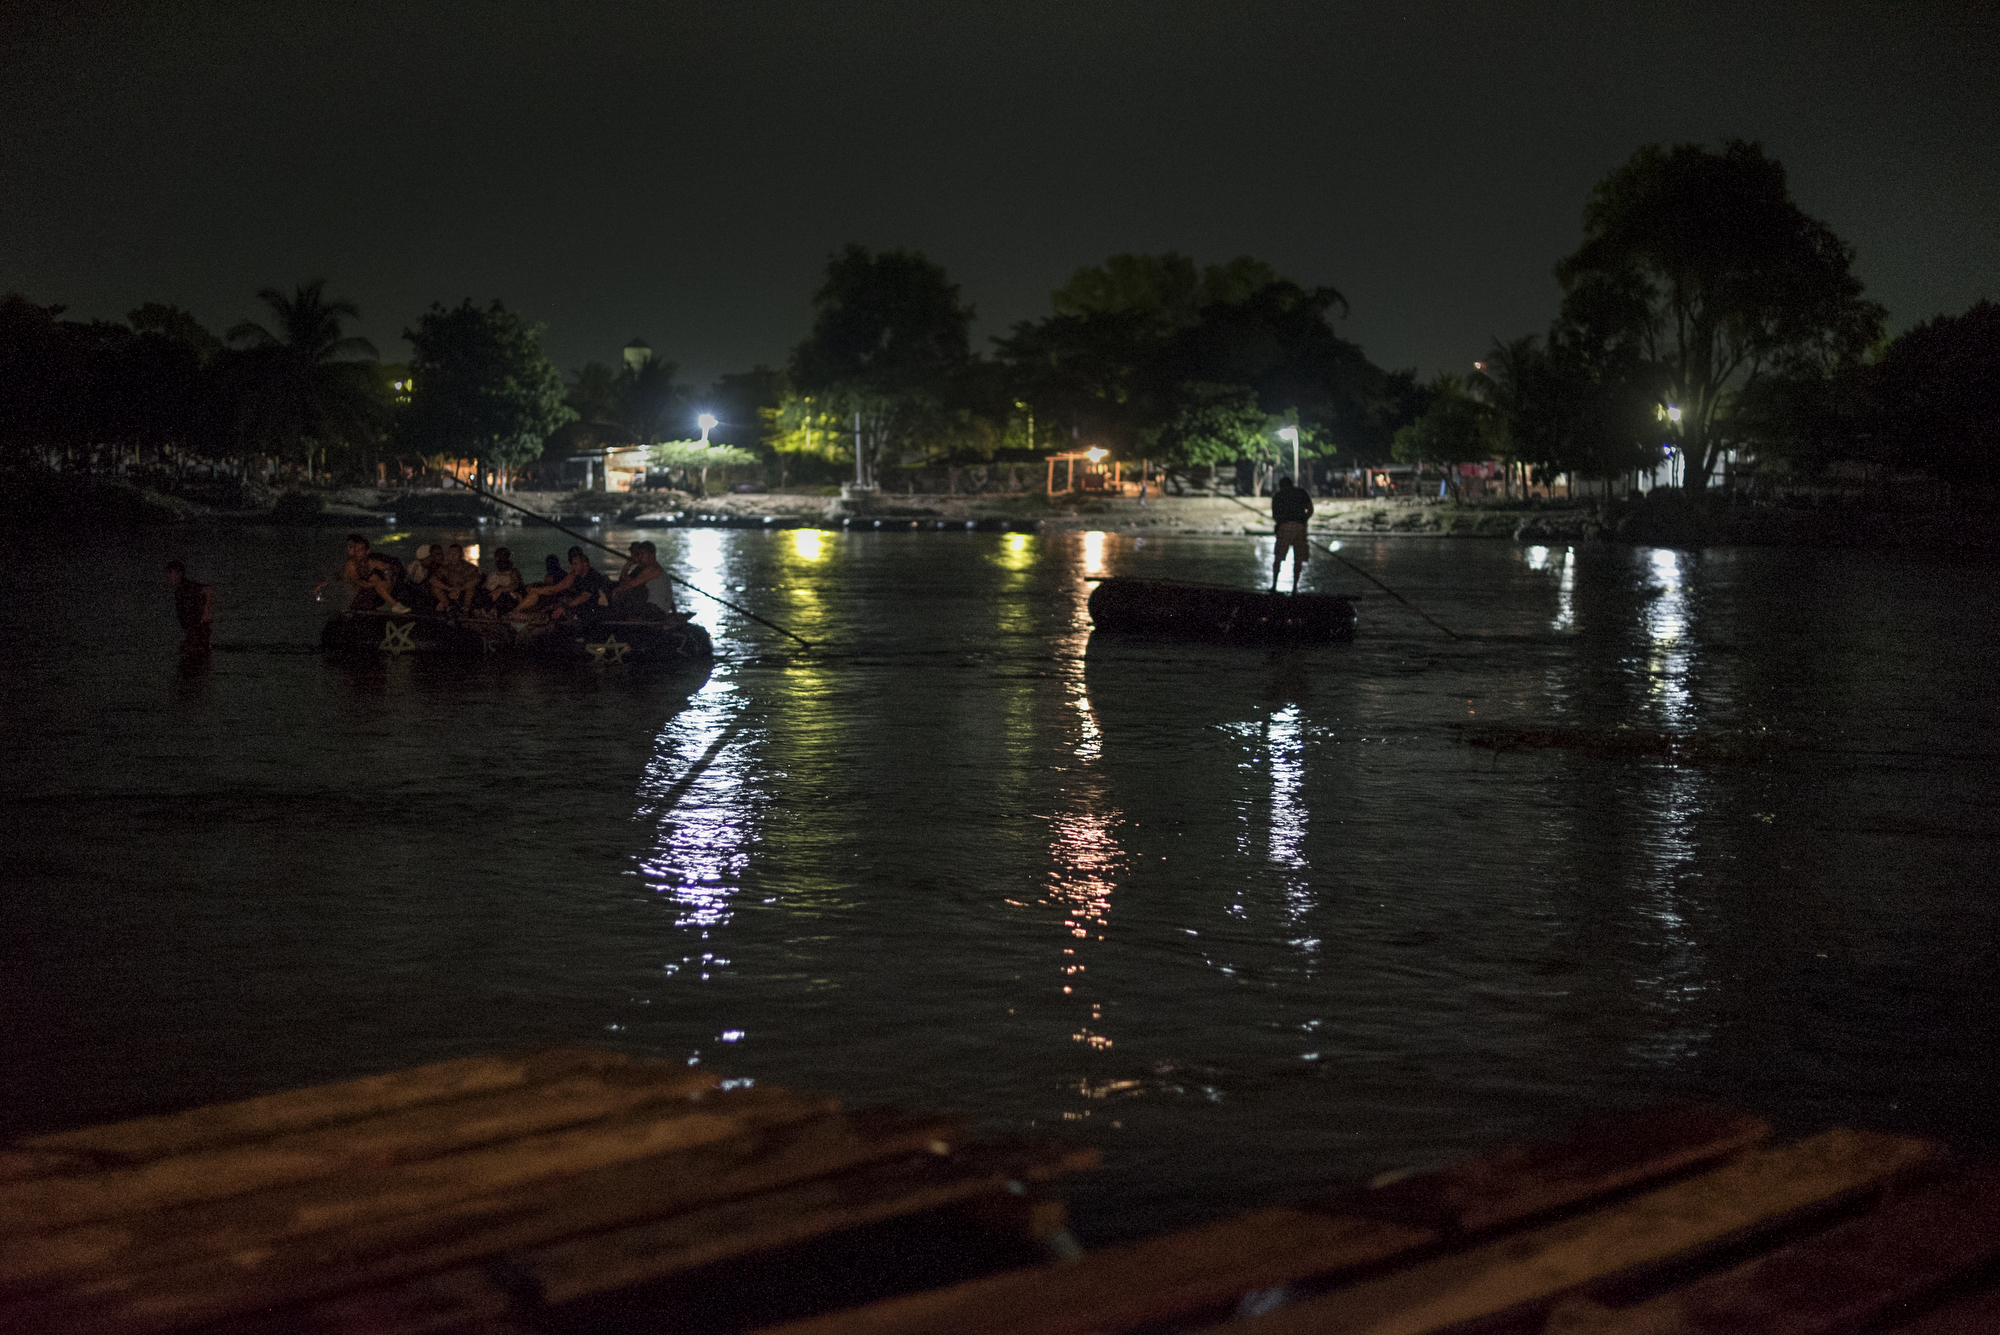 Cuban refugees cross the Suchiate River into Mexico from Guatemala in the early morning hours, their 8th border crossing since leaving Cuba a month earlier.